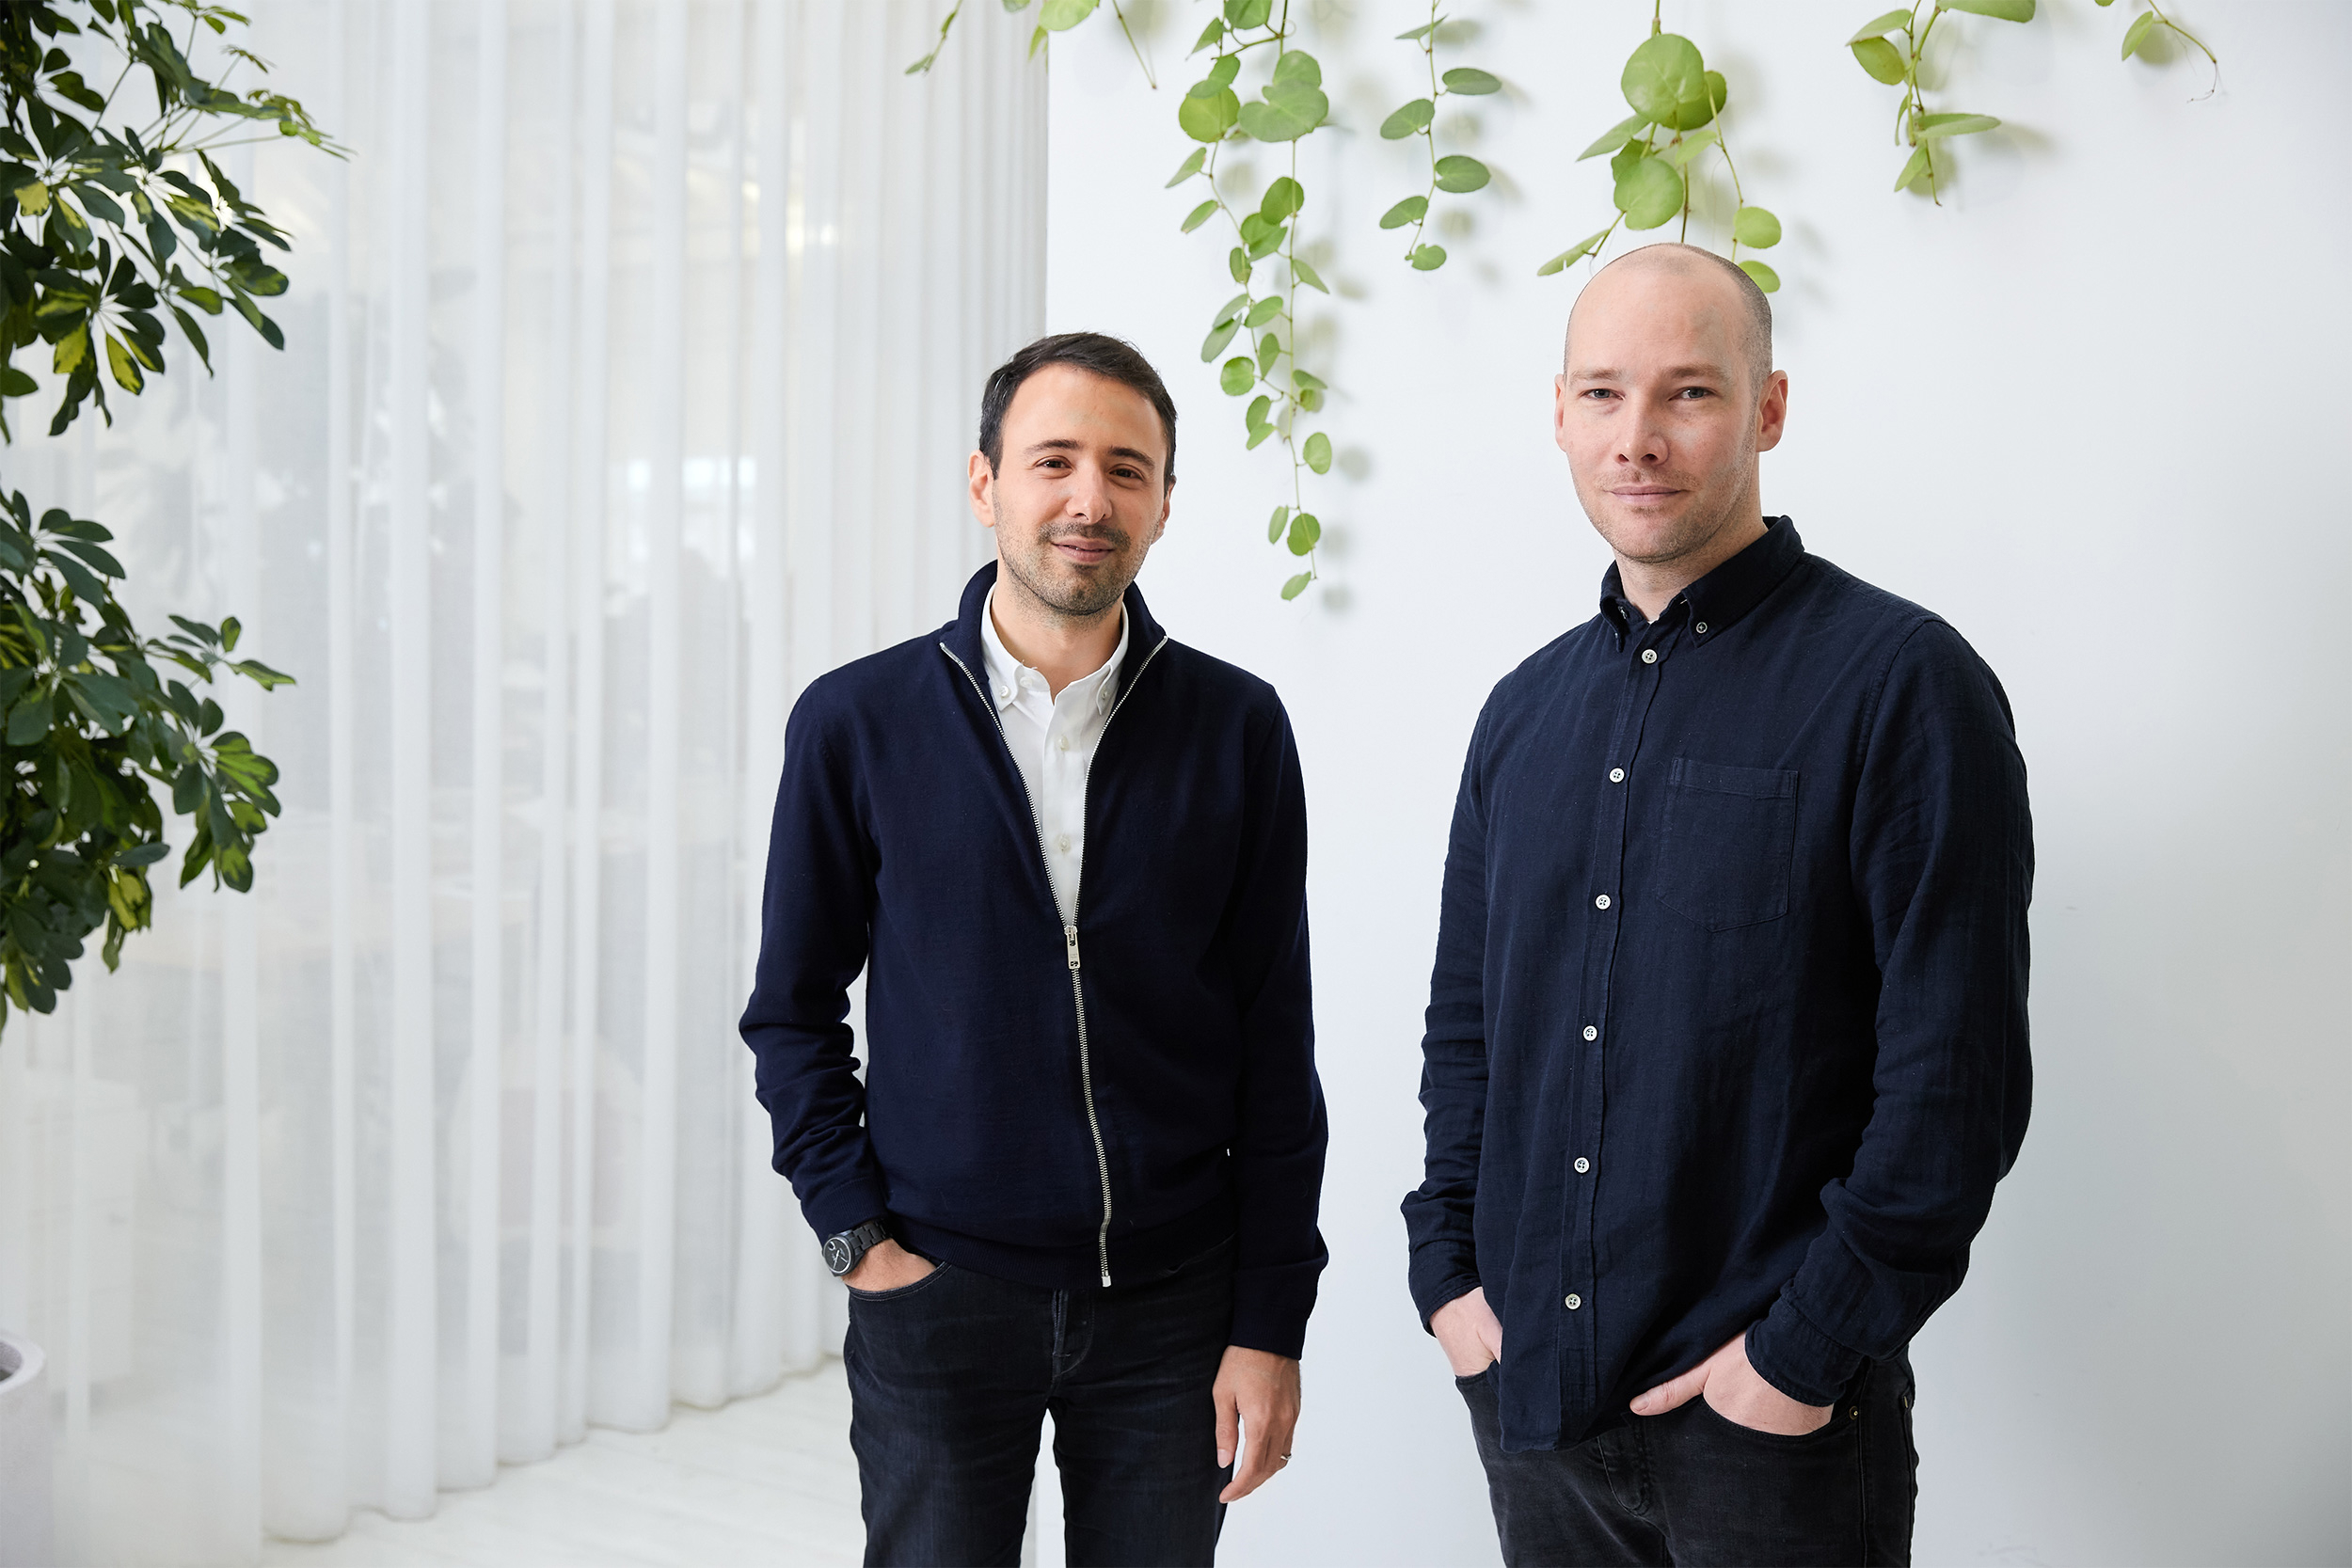 The Clippings founders about the acquisition by Material Bank